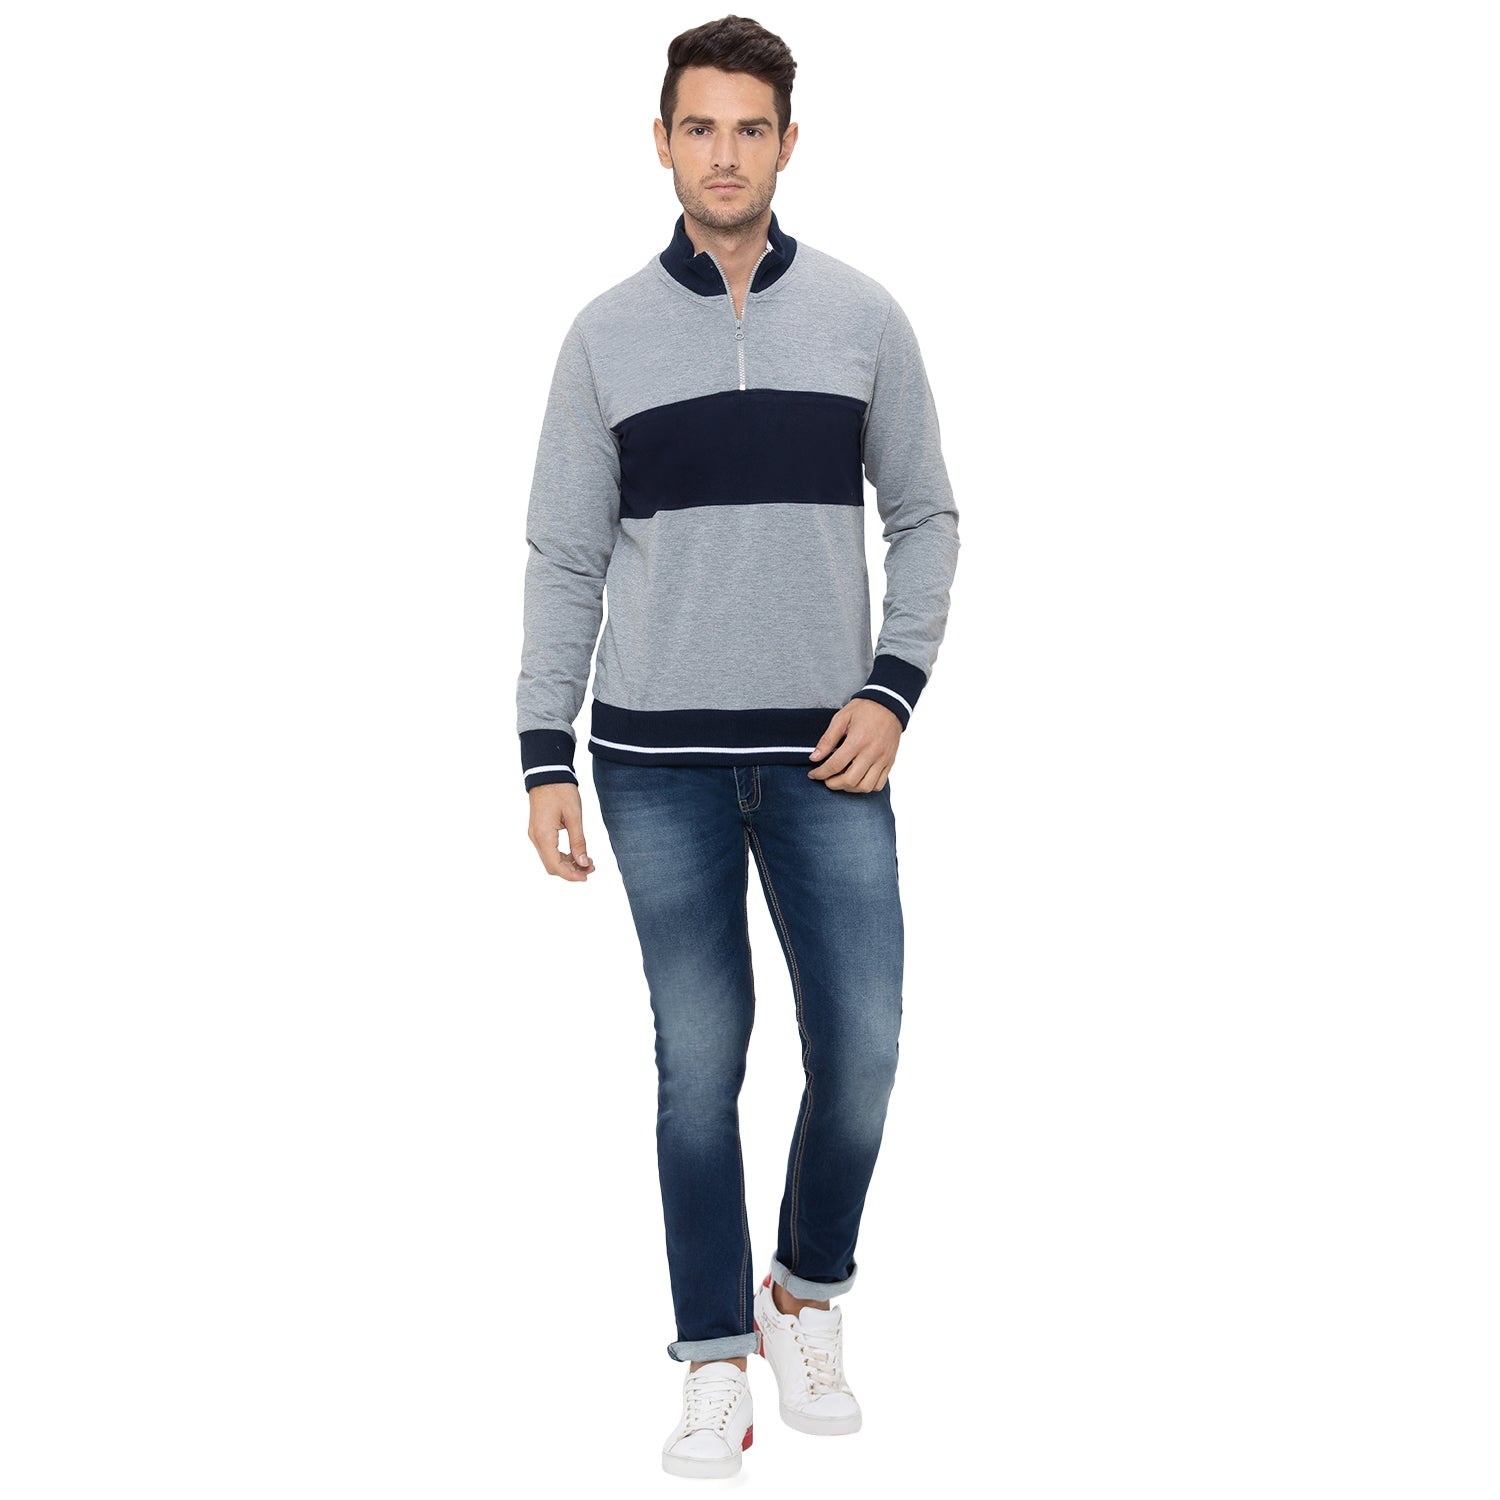 Globus Grey Striped Sweatshirt-2